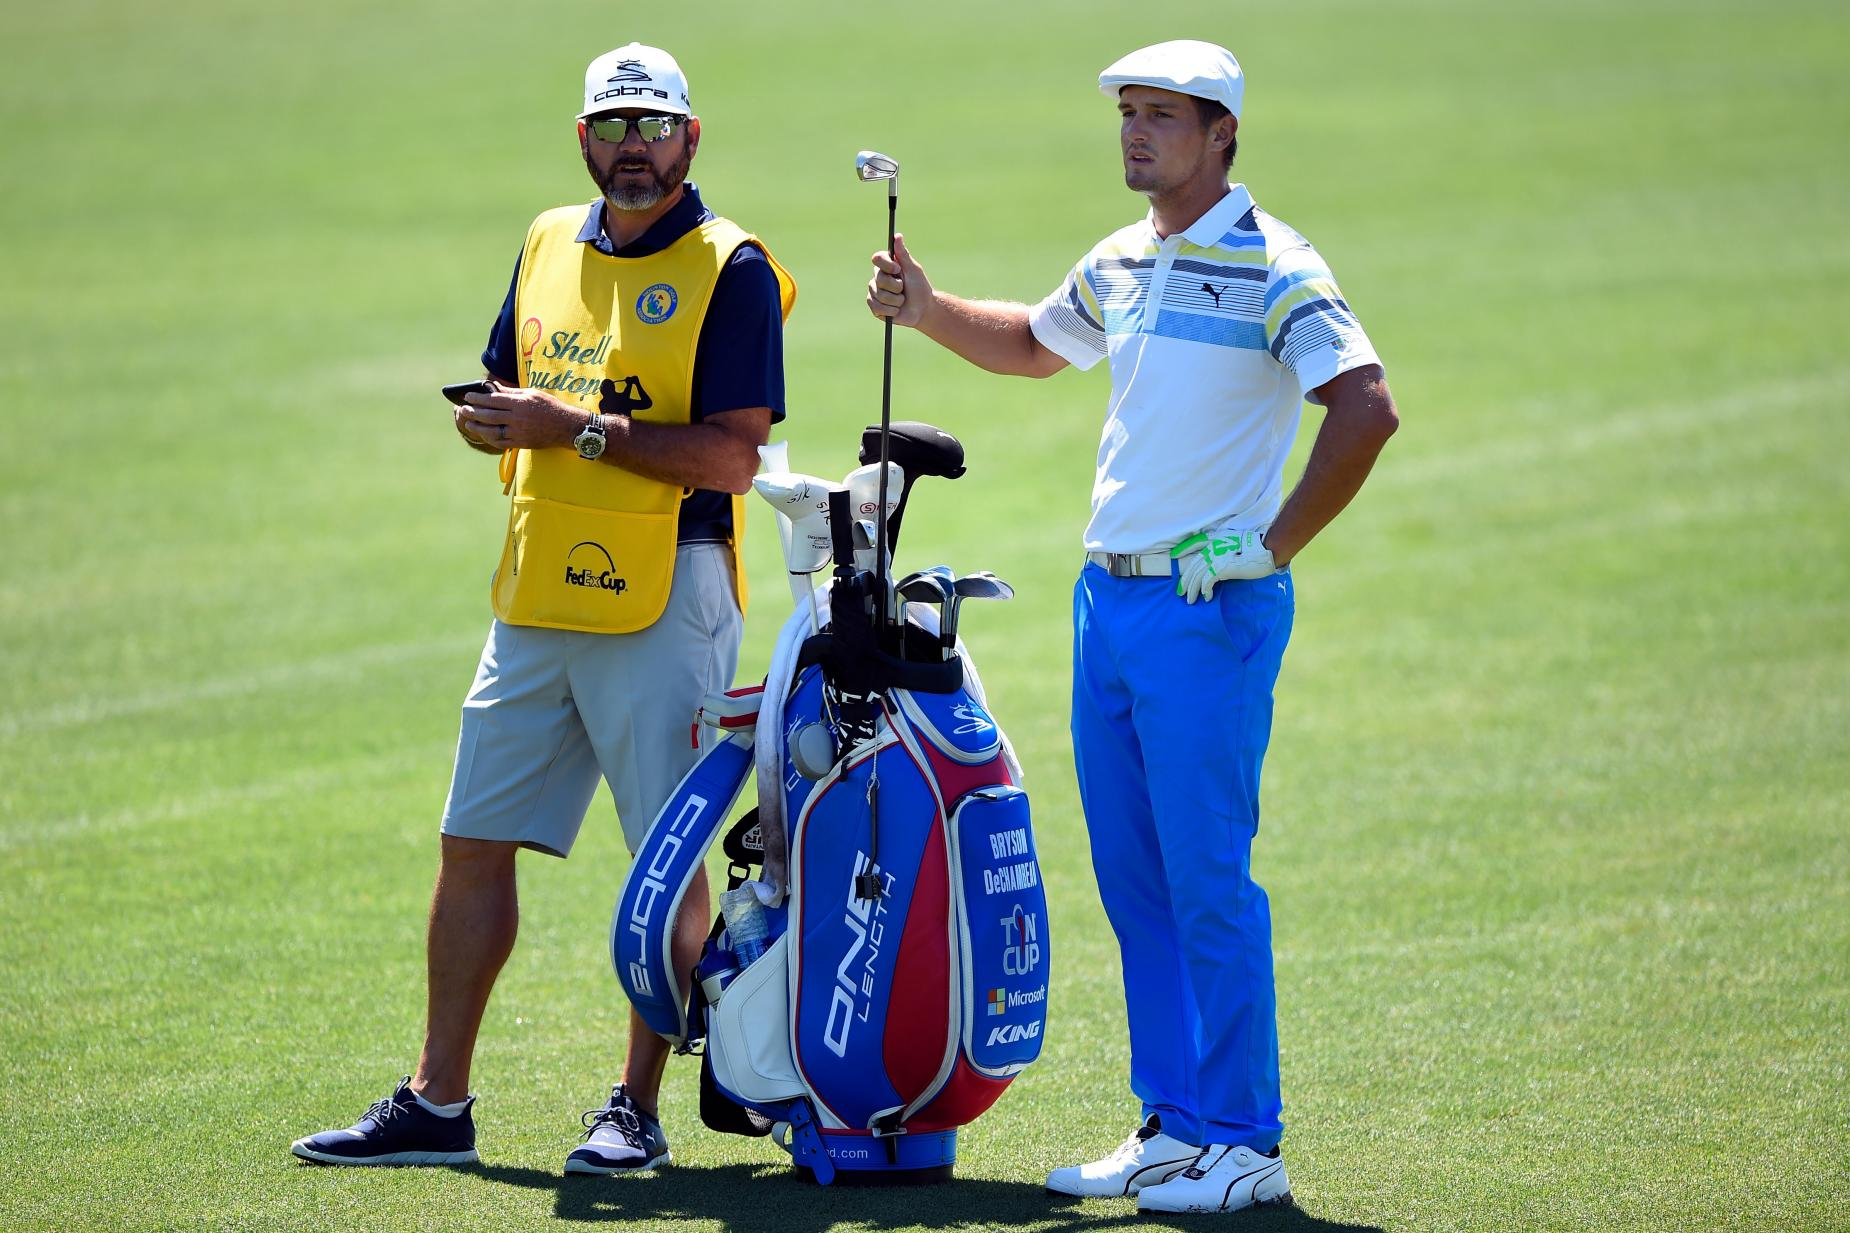 single-length-bryson-dechambeau-pulling-club-bag.jpg